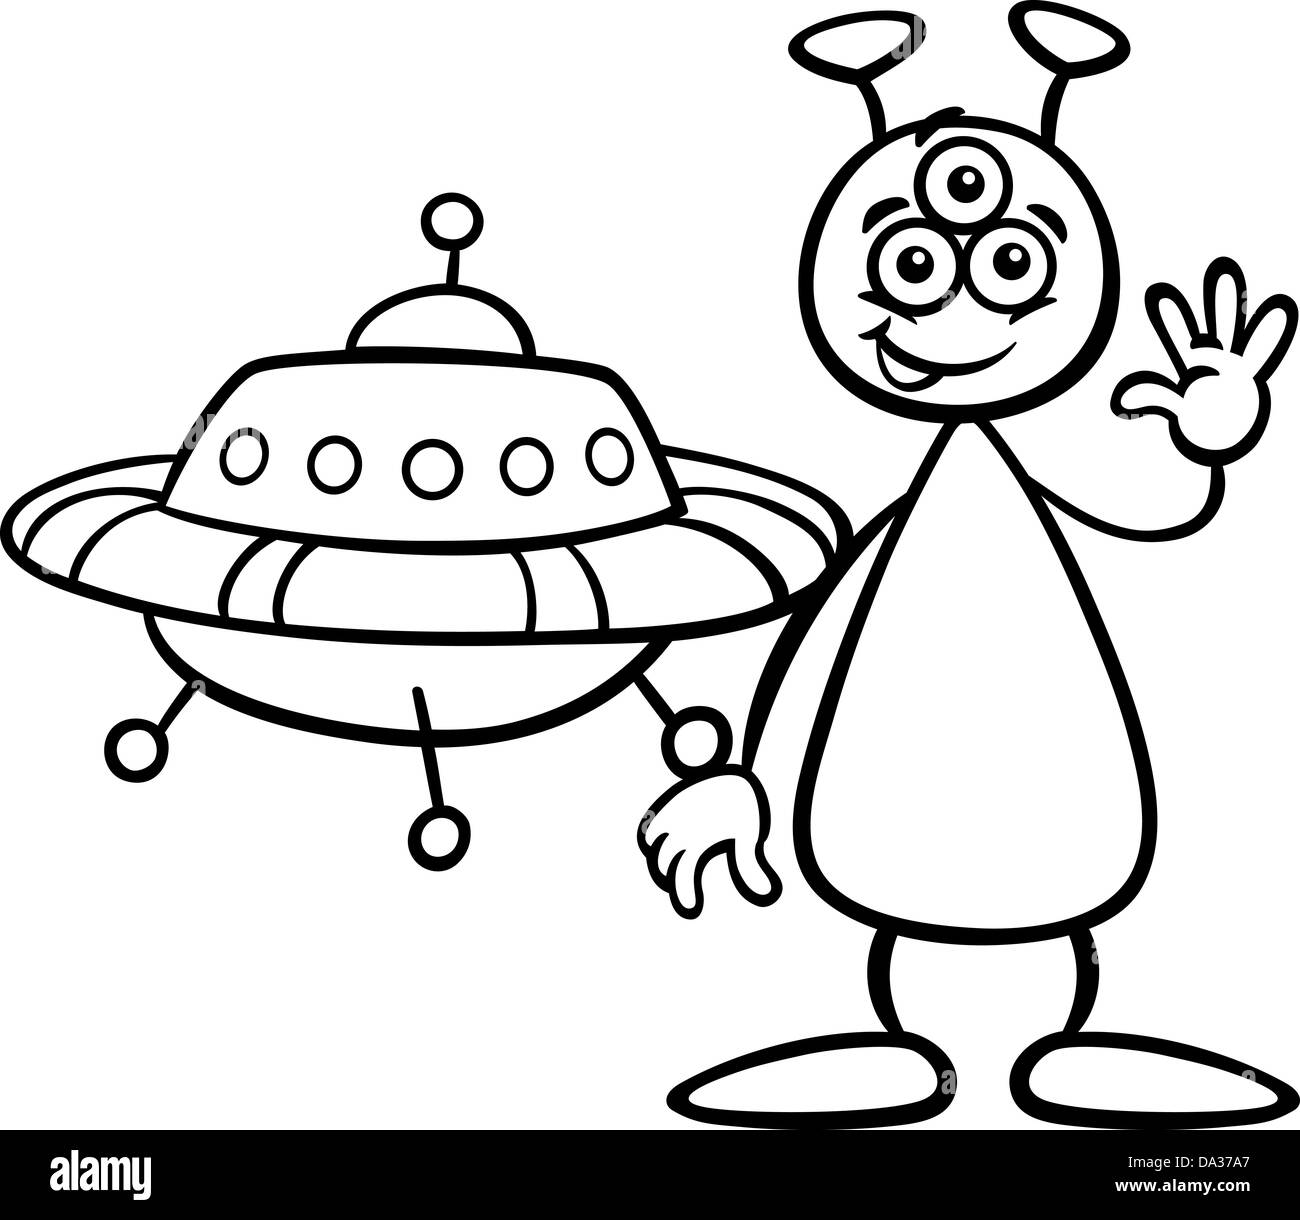 black and white cartoon illustration of funny alien or